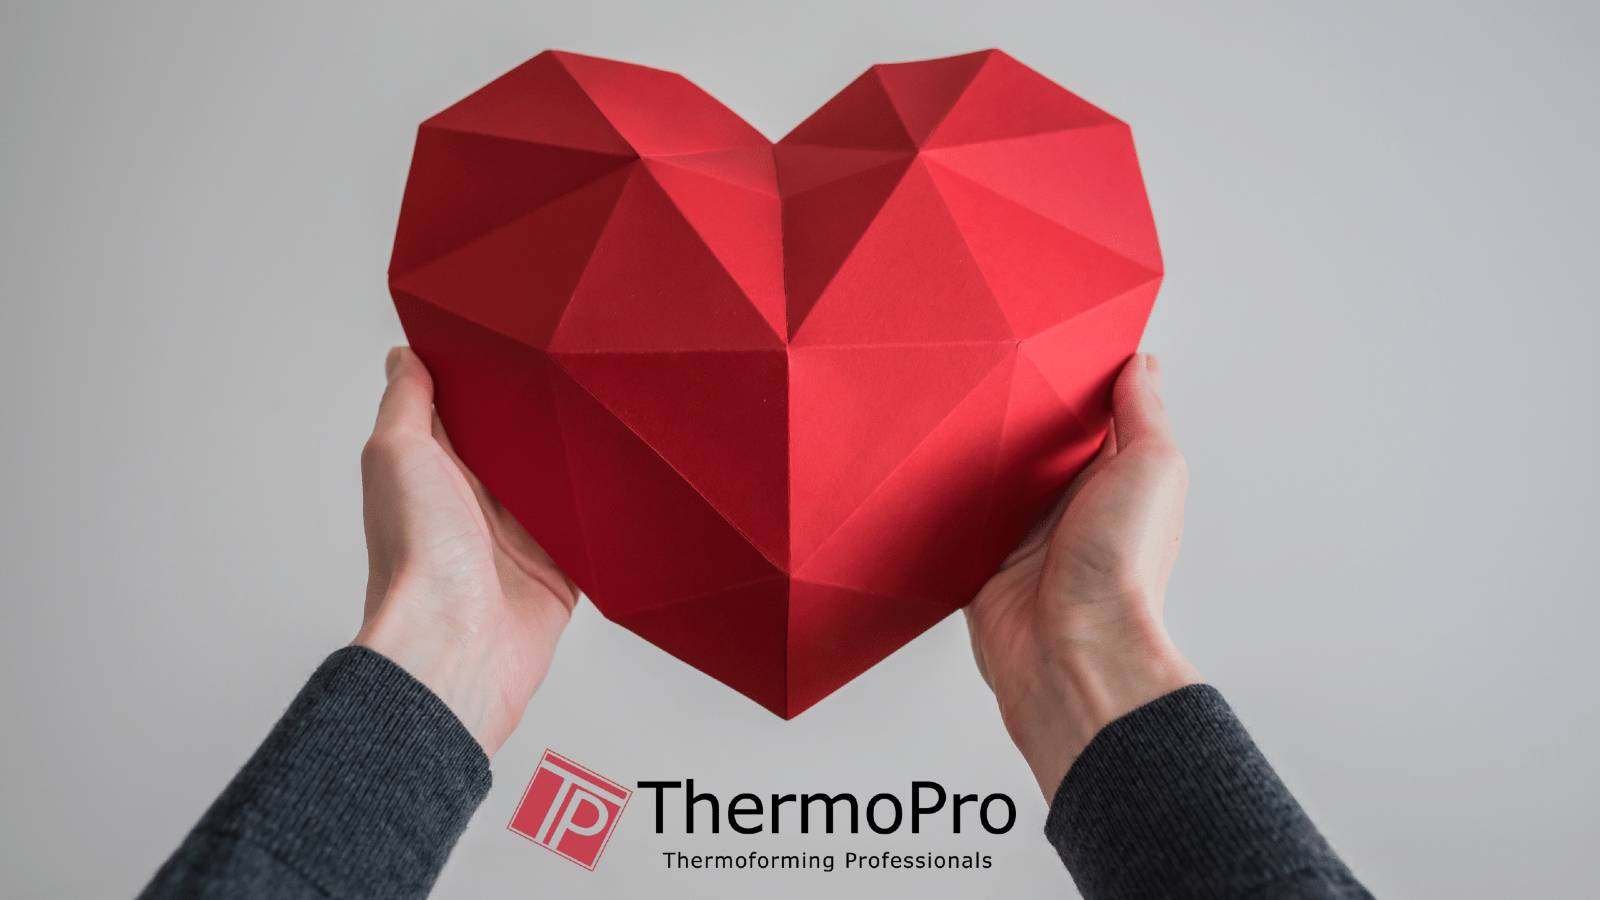 ThermoPro Gives Back